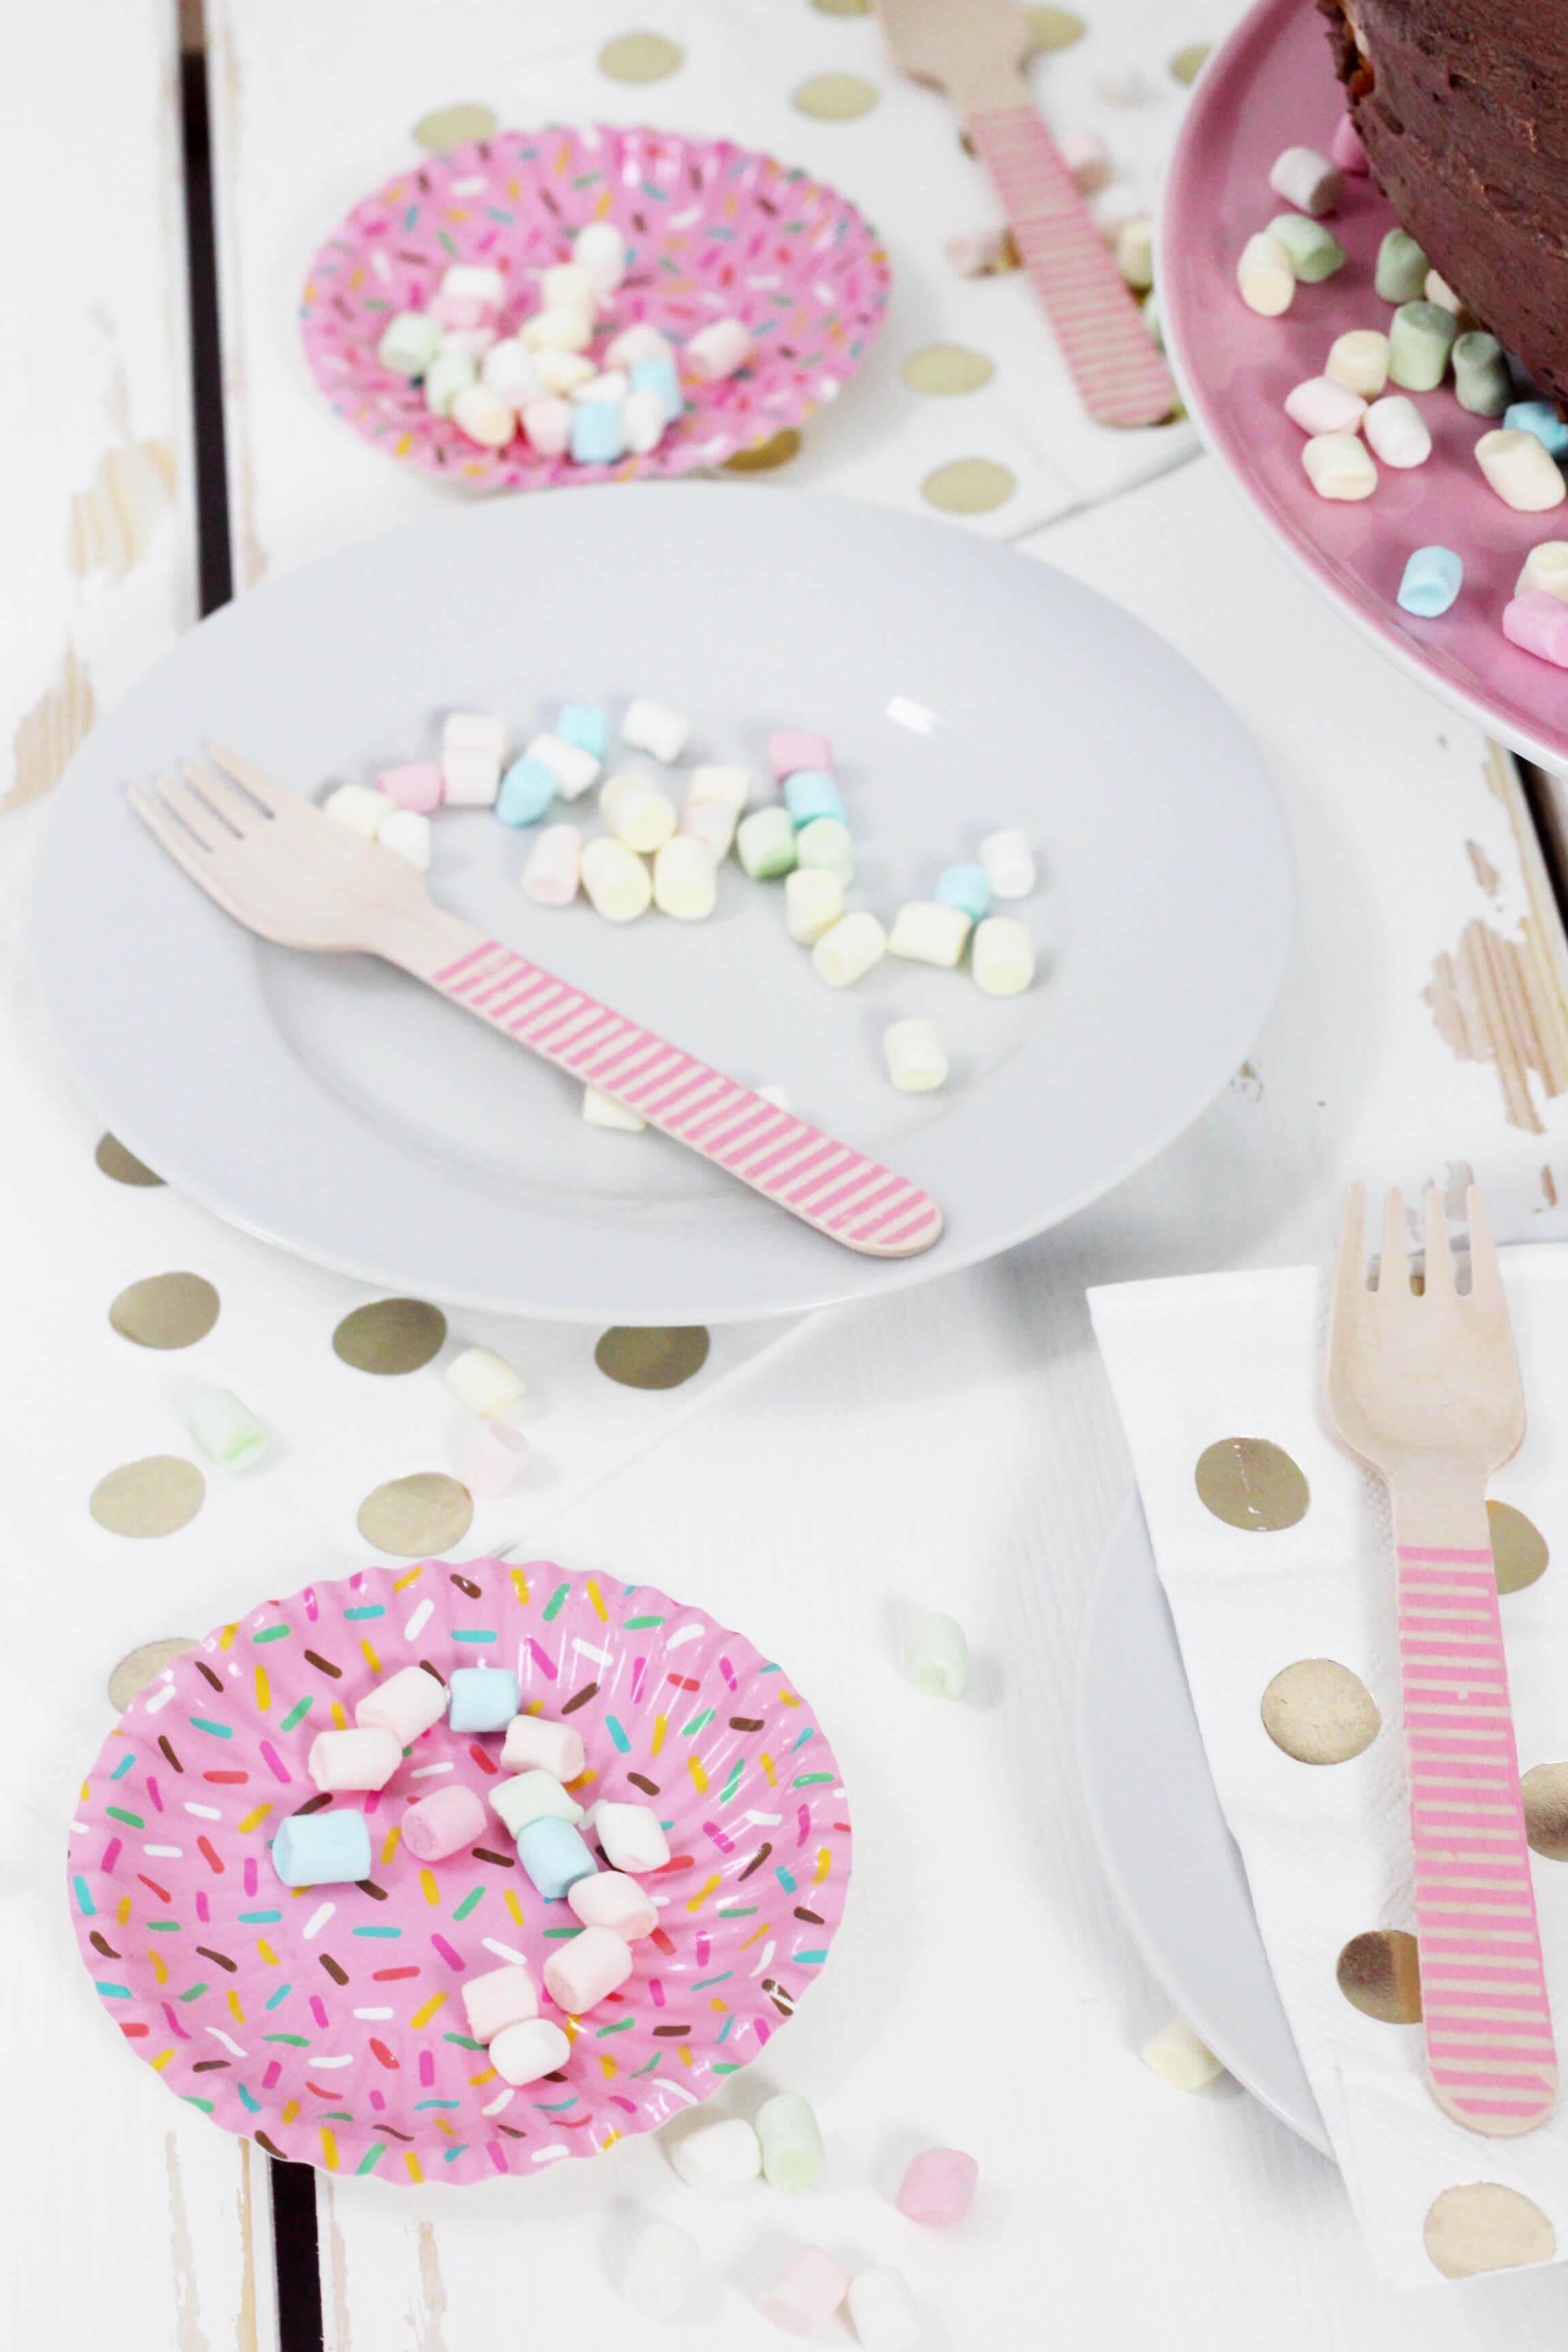 diy-party-deko-kuchen-backen-geburtstag-diy-blog